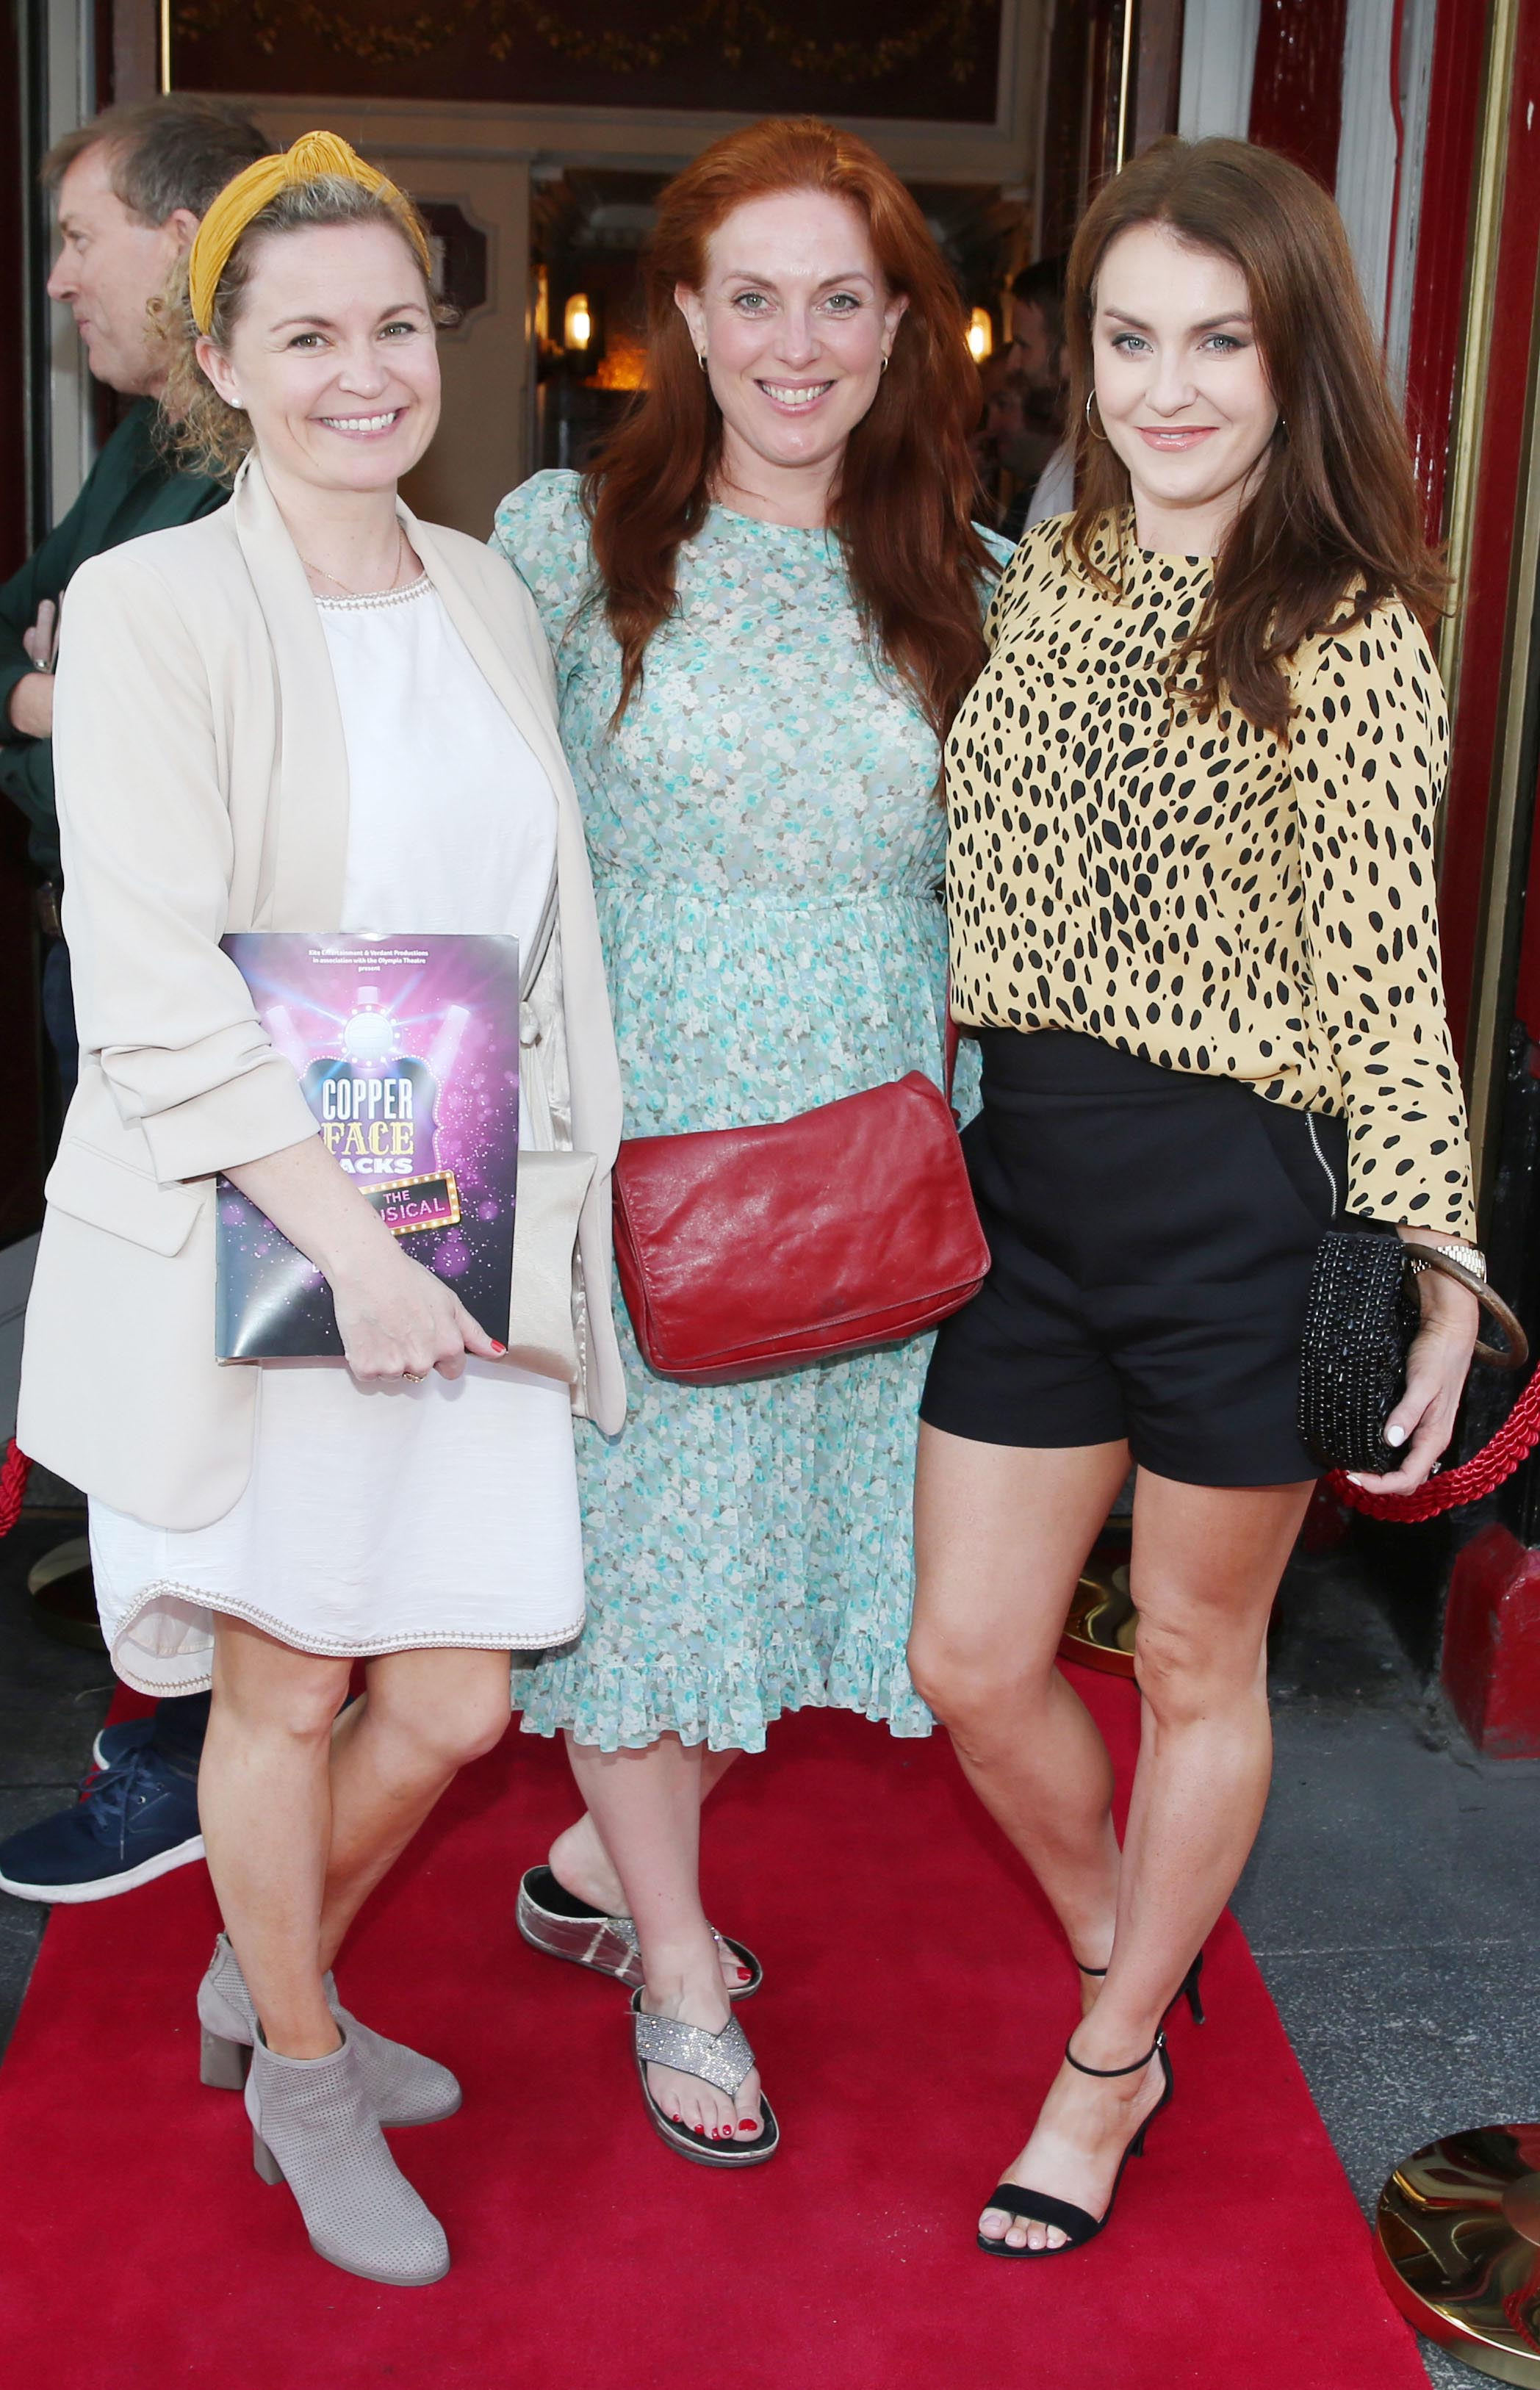 Laura McNaulty , Clelia Murphy and Mariead Ronan at the opening night of  Copper Face Jacks The Musical at  the Olympia Theatre which  runs until the 10th August.Photo: Leon Farrell/Photocall Ireland.